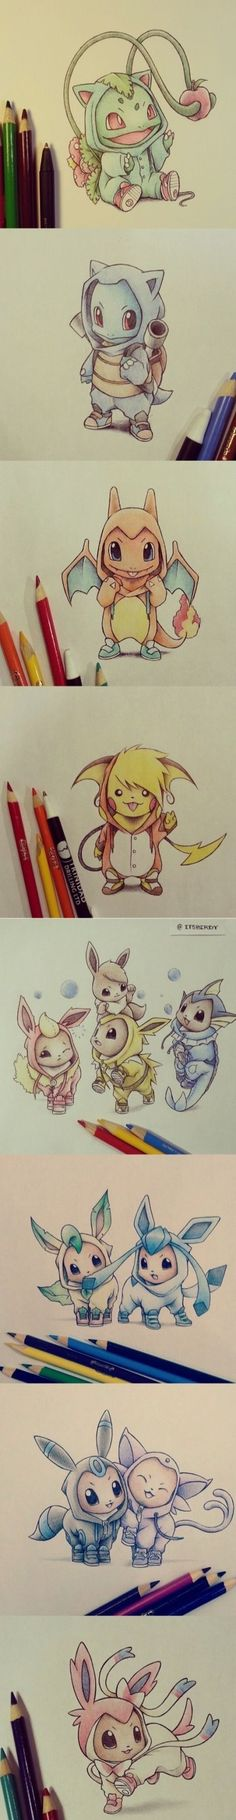 Pokemon in onesies of their evolutions! See source for artist!>> I dnt like pokemon but this is too cute! Pokemon Tattoo, Pokemon Fan, Charmander Tattoo, Pokemon Mignon, Chibi, Anime Kawaii, Digimon, Nerdy, Anime Art